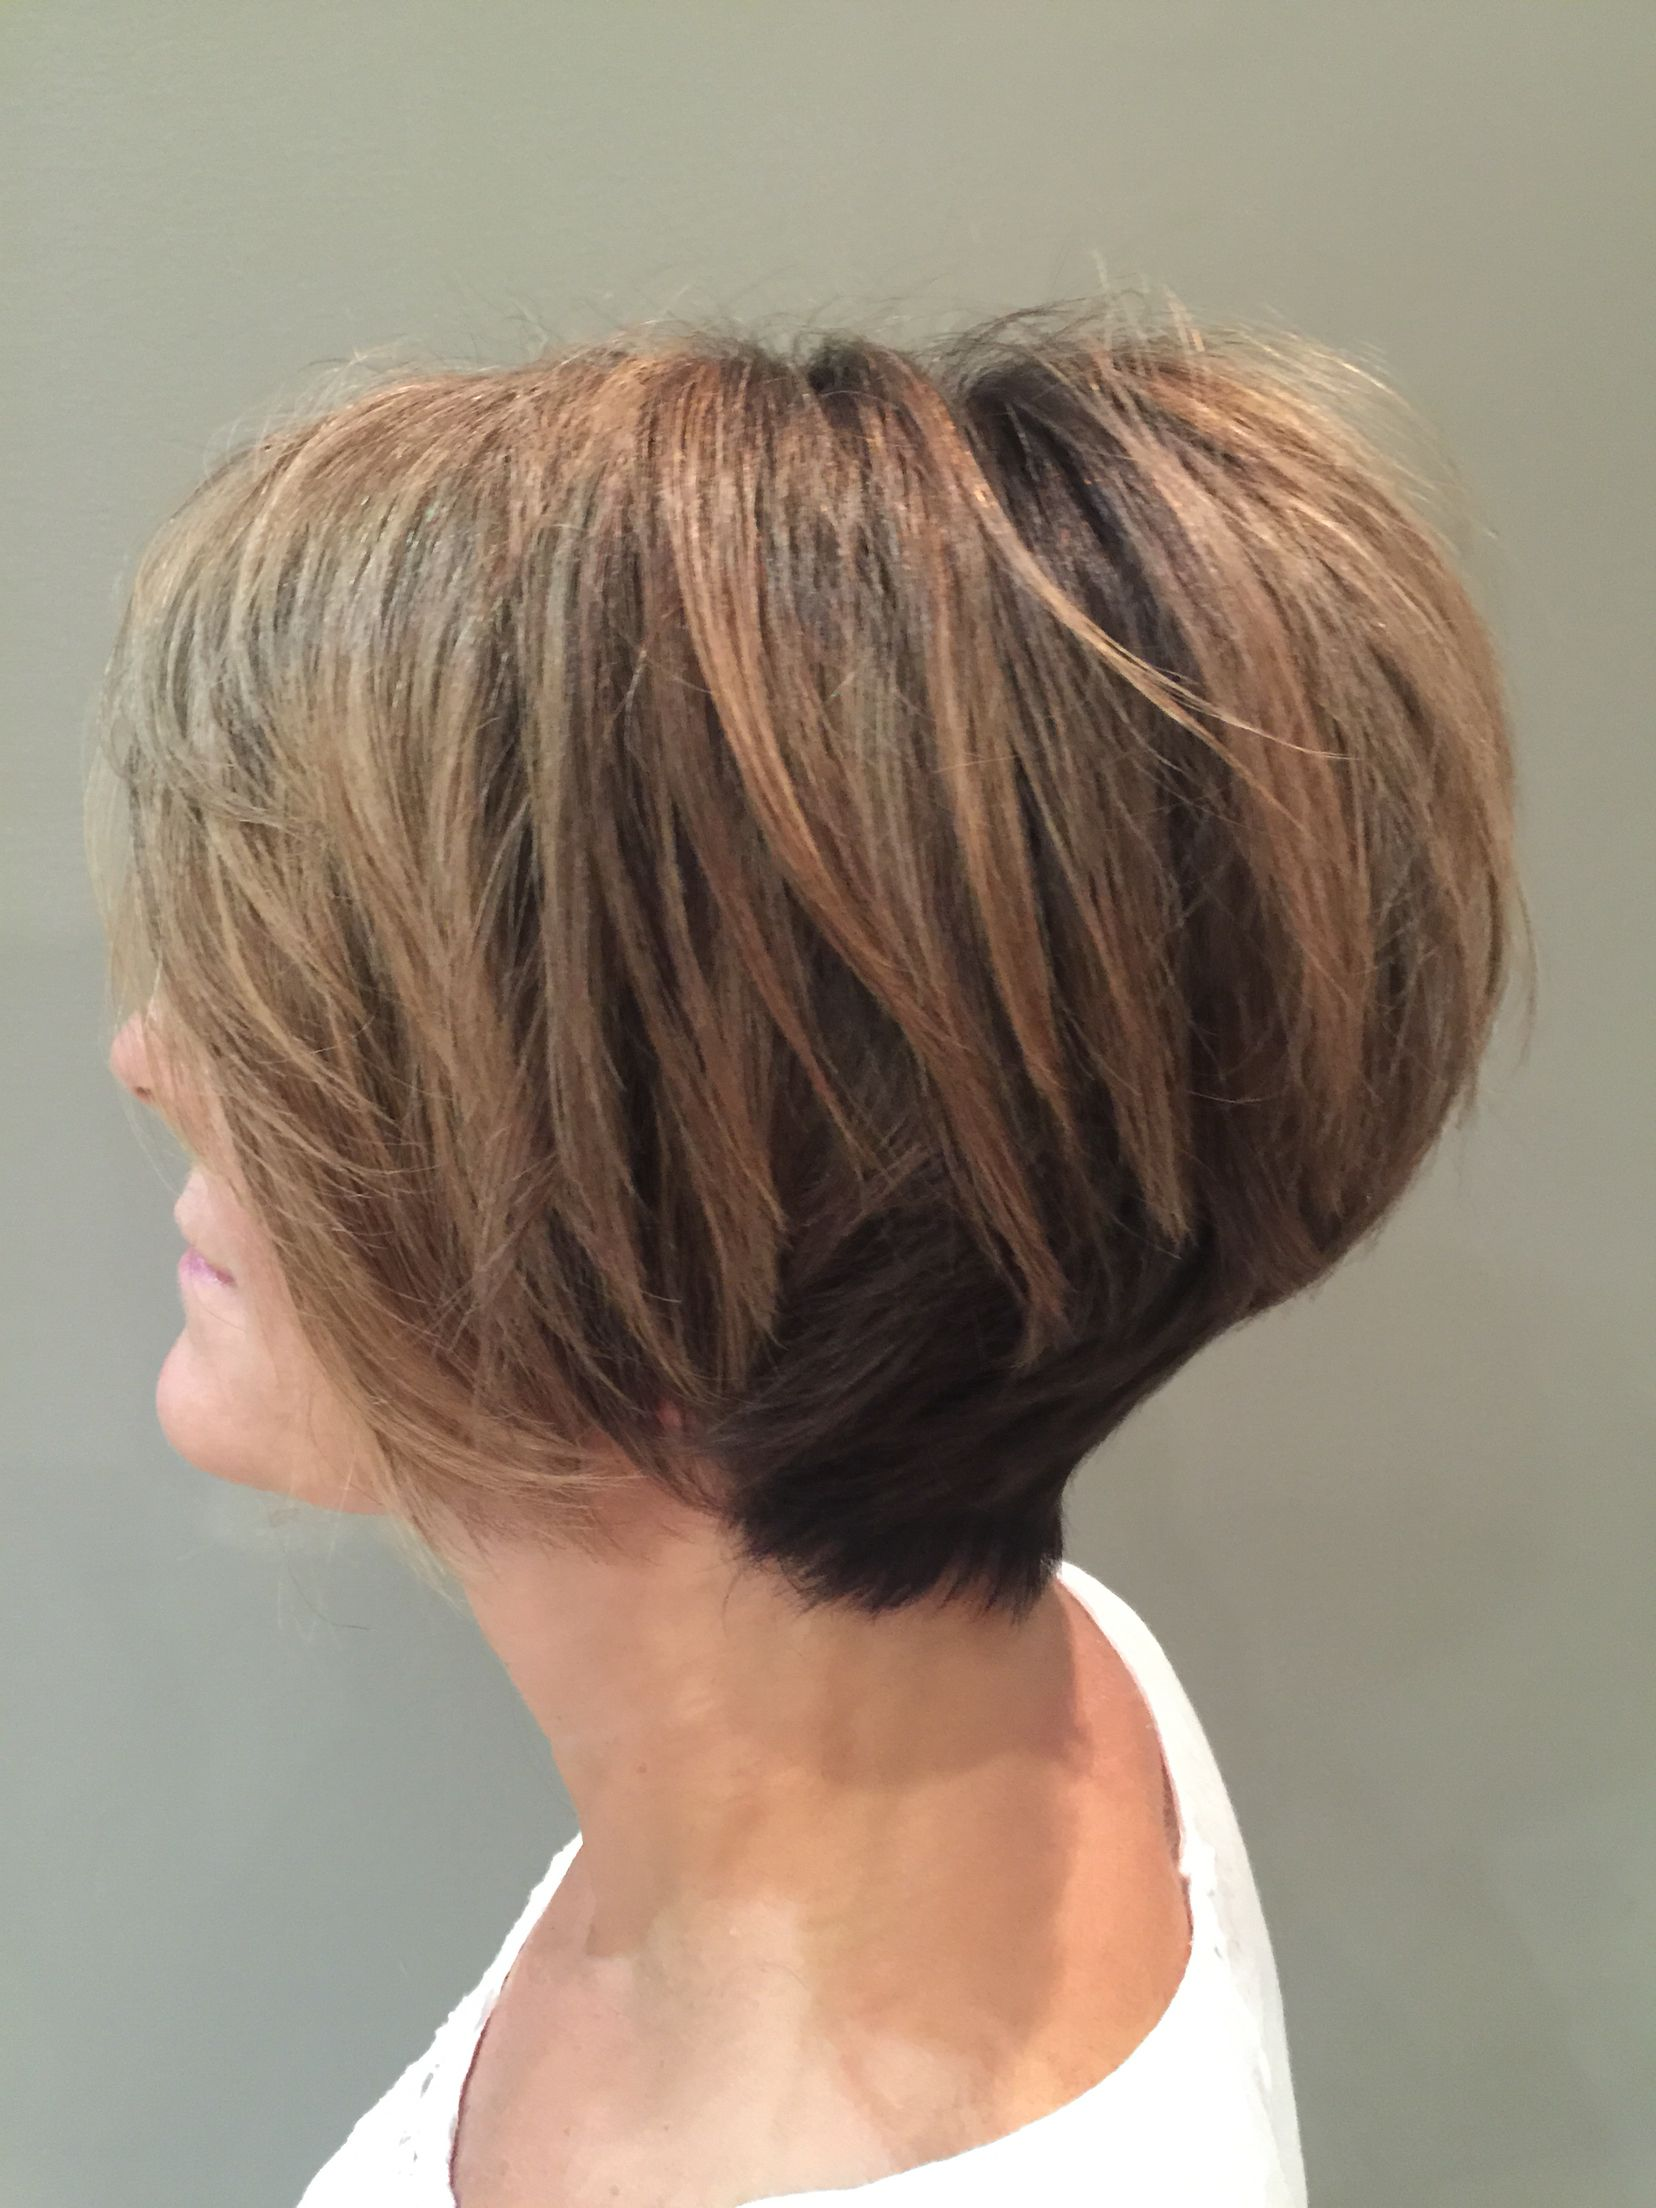 Longer bob now cropped shorter for summer super fresh yet still